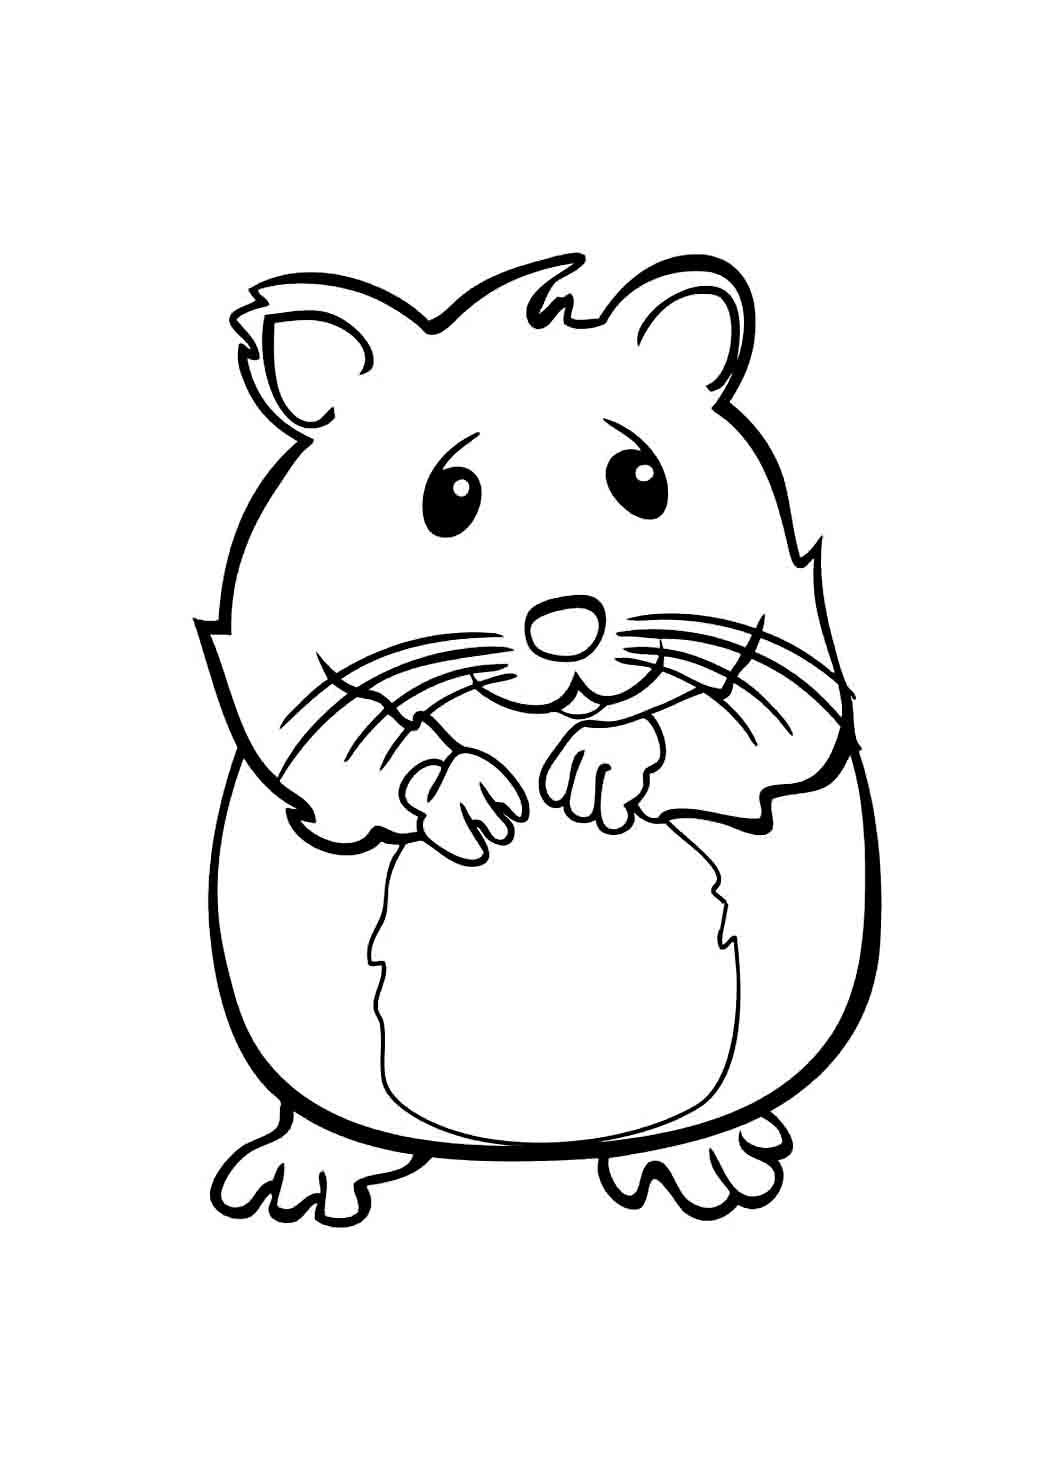 Pets Coloring Pages Best Coloring Pages For Kids Animal Coloring Pages Farm Animal Coloring Pages Cat Coloring Page